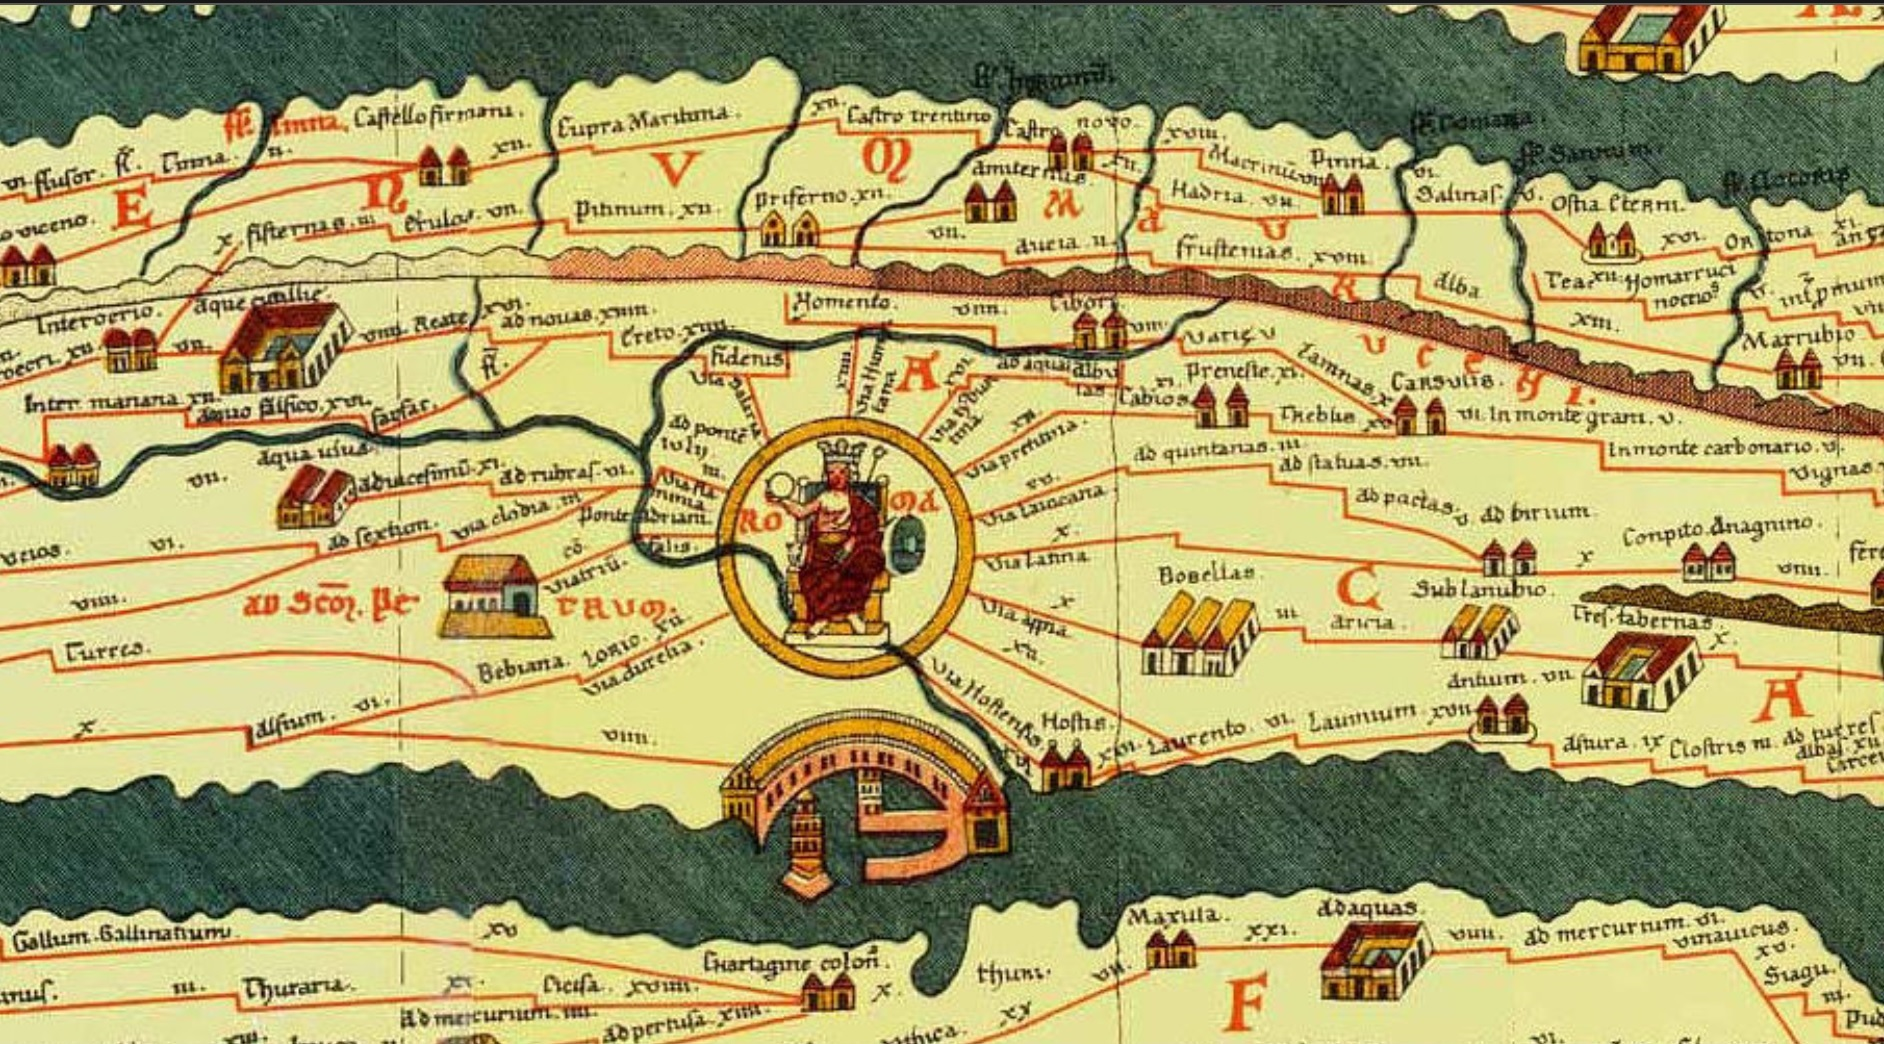 Part of the Tabula Peutingeriana (Konrad Miller´s facsimile, 1887). The Tabula Peutingeriana is thought to be the only known surviving map of the Roman cursus publicus, the state-run road network. The surviving map itself was created by a monk in Colmar in modern-day eastern France in 1265. It is a parchment scroll, 0.34 meters (1 foot 1 inch) high and 6.75 meters (22.1 feet) long, assembled from eleven sections, a medieval reproduction of the original scroll.